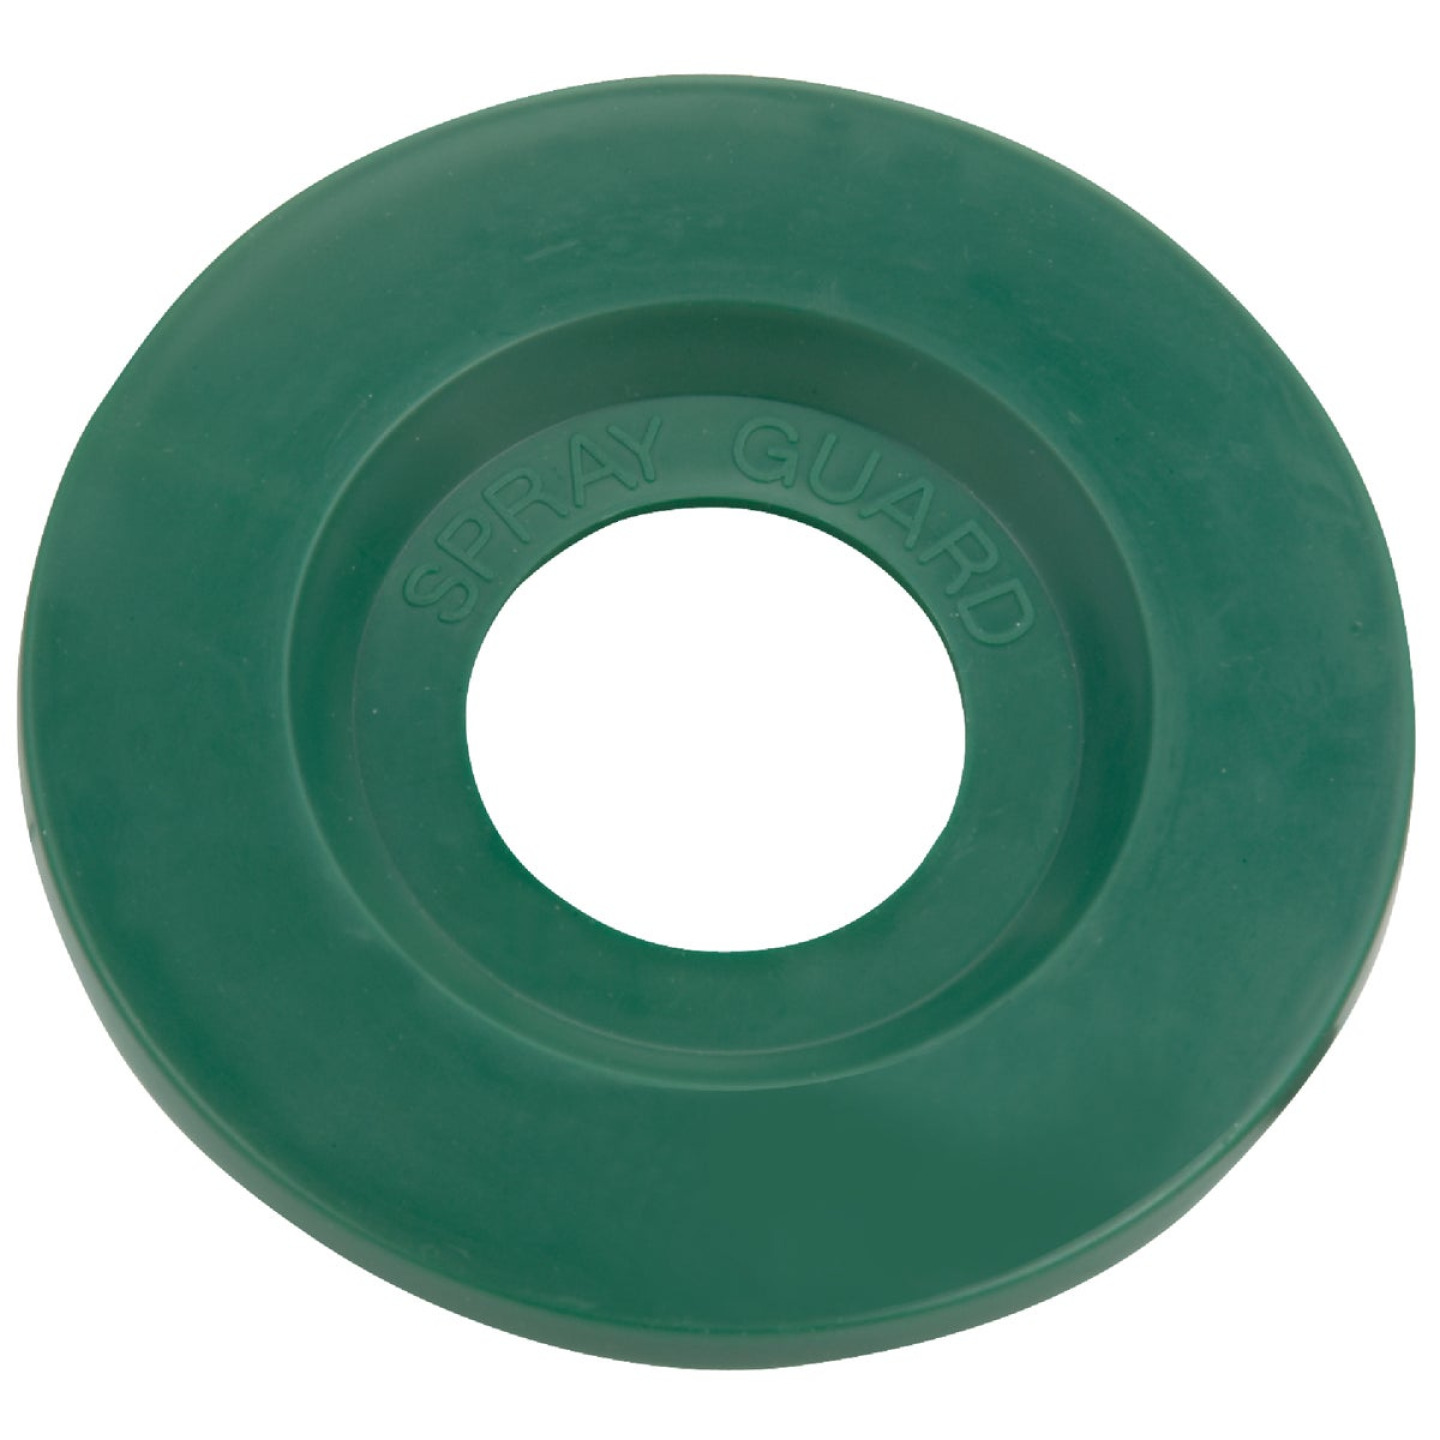 Orbit 5 In. Plastic Sprinkler Spray Guard Image 1